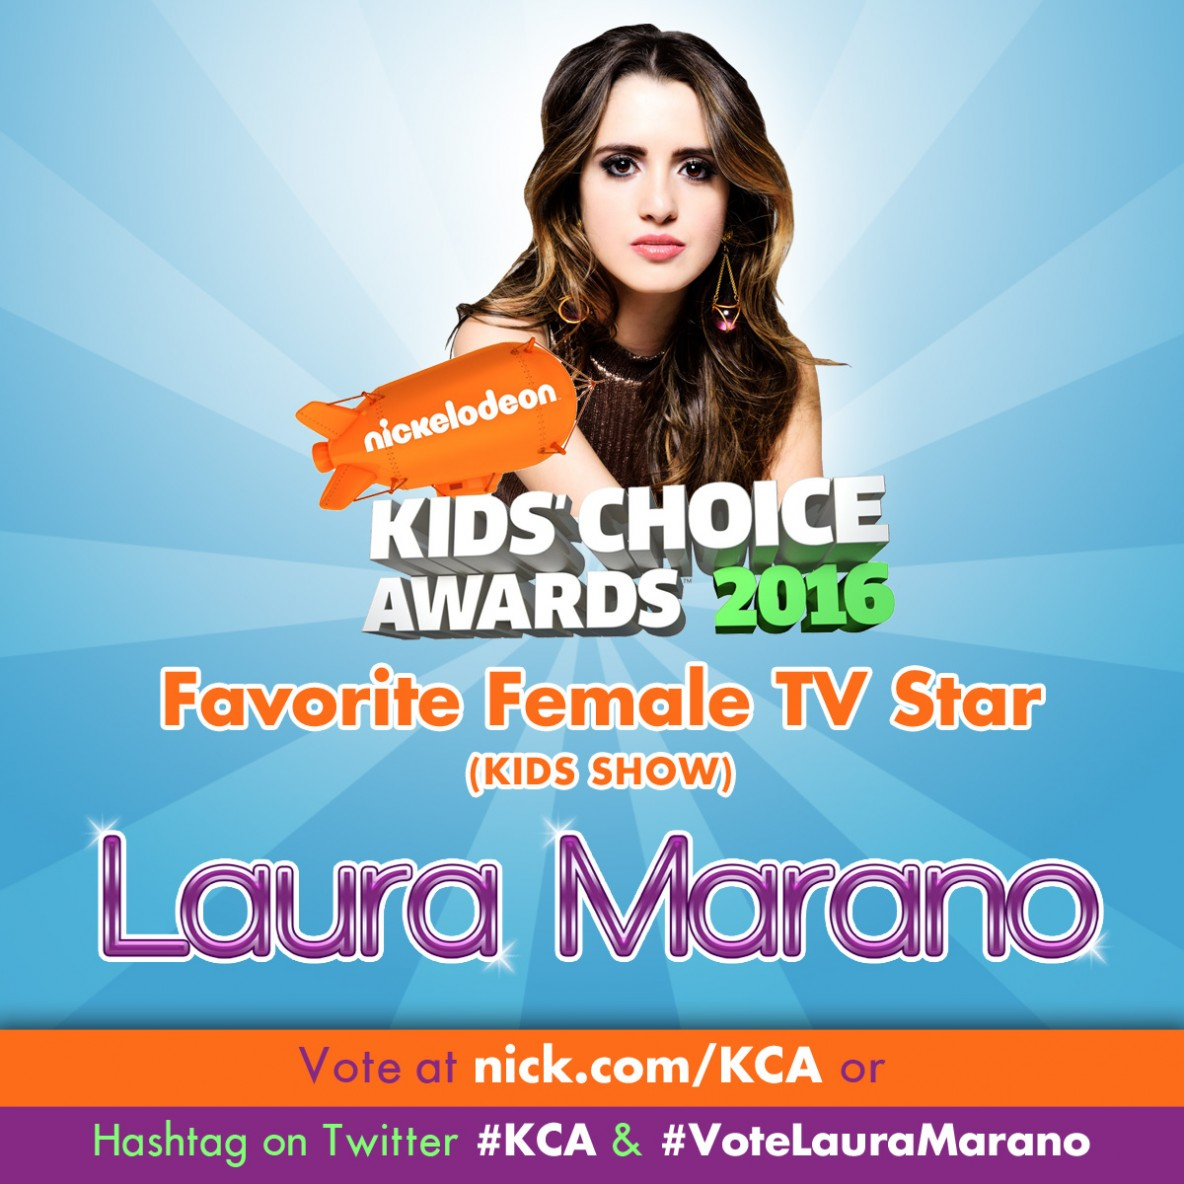 cbb320f435a Vote Laura for the Kids Choice Awards